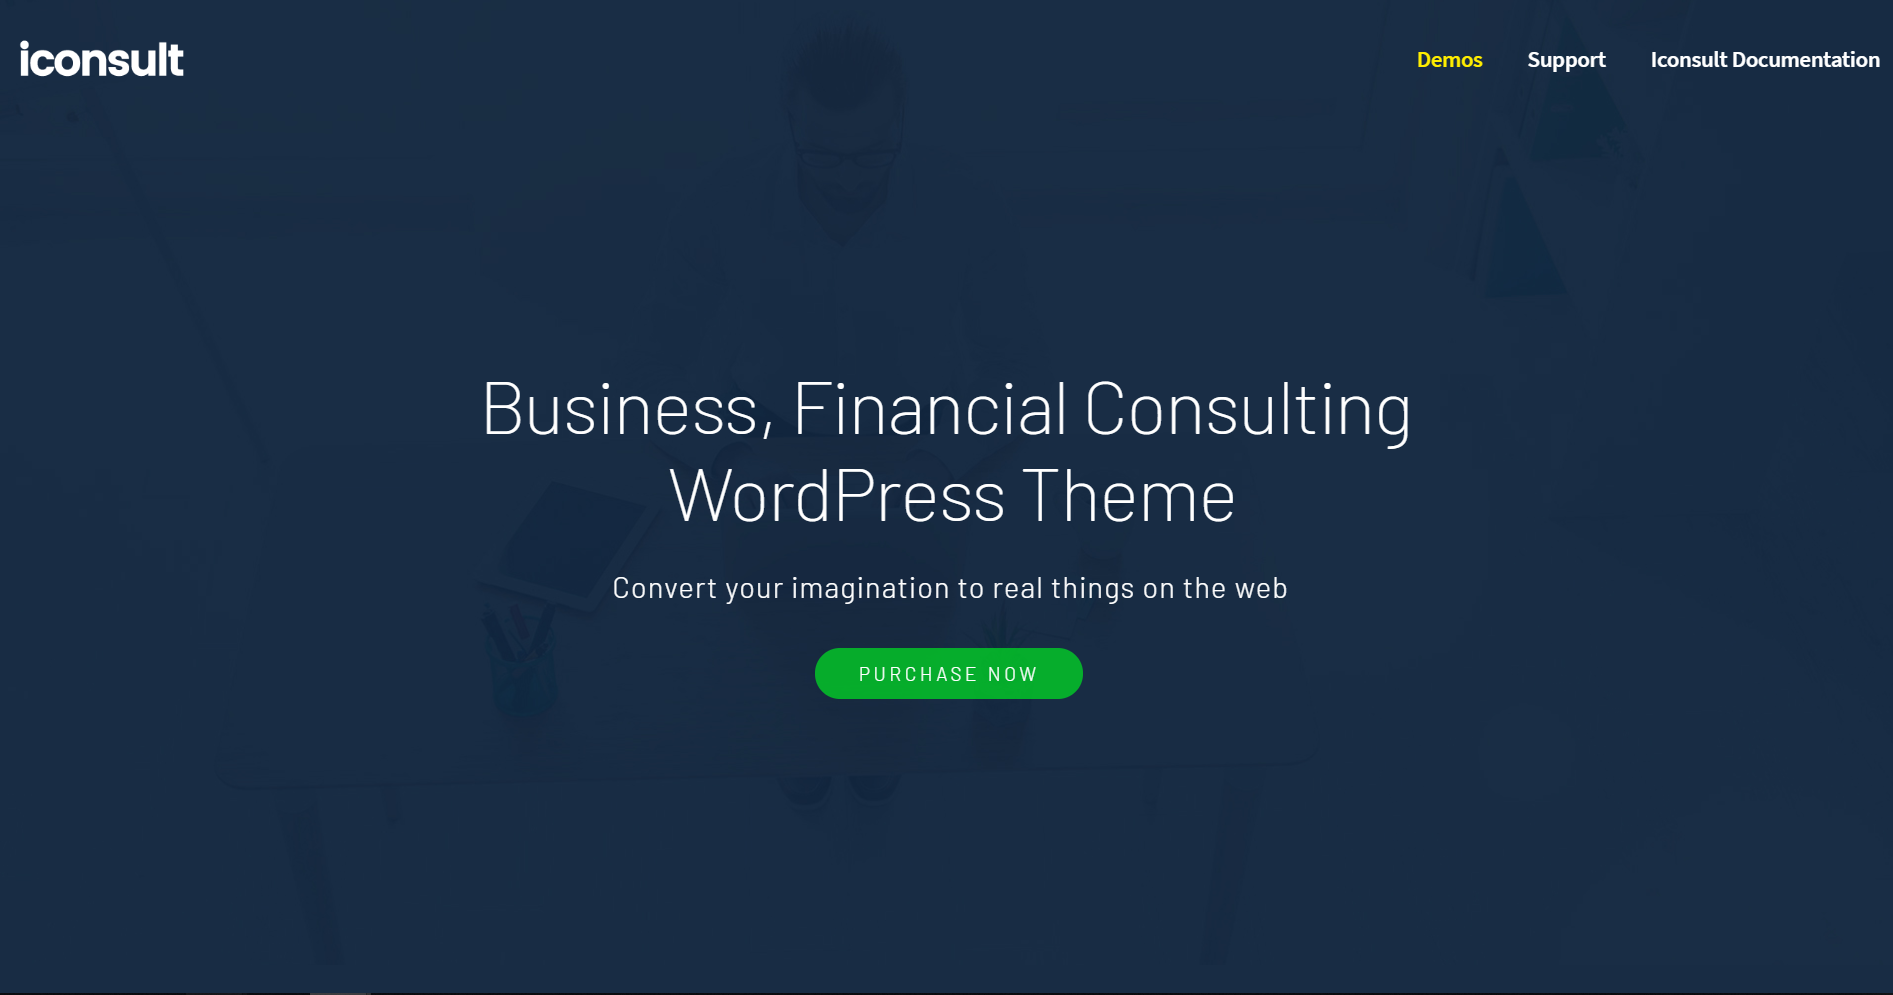 47. iConsult - Business, Financial Consulting WordPress Theme